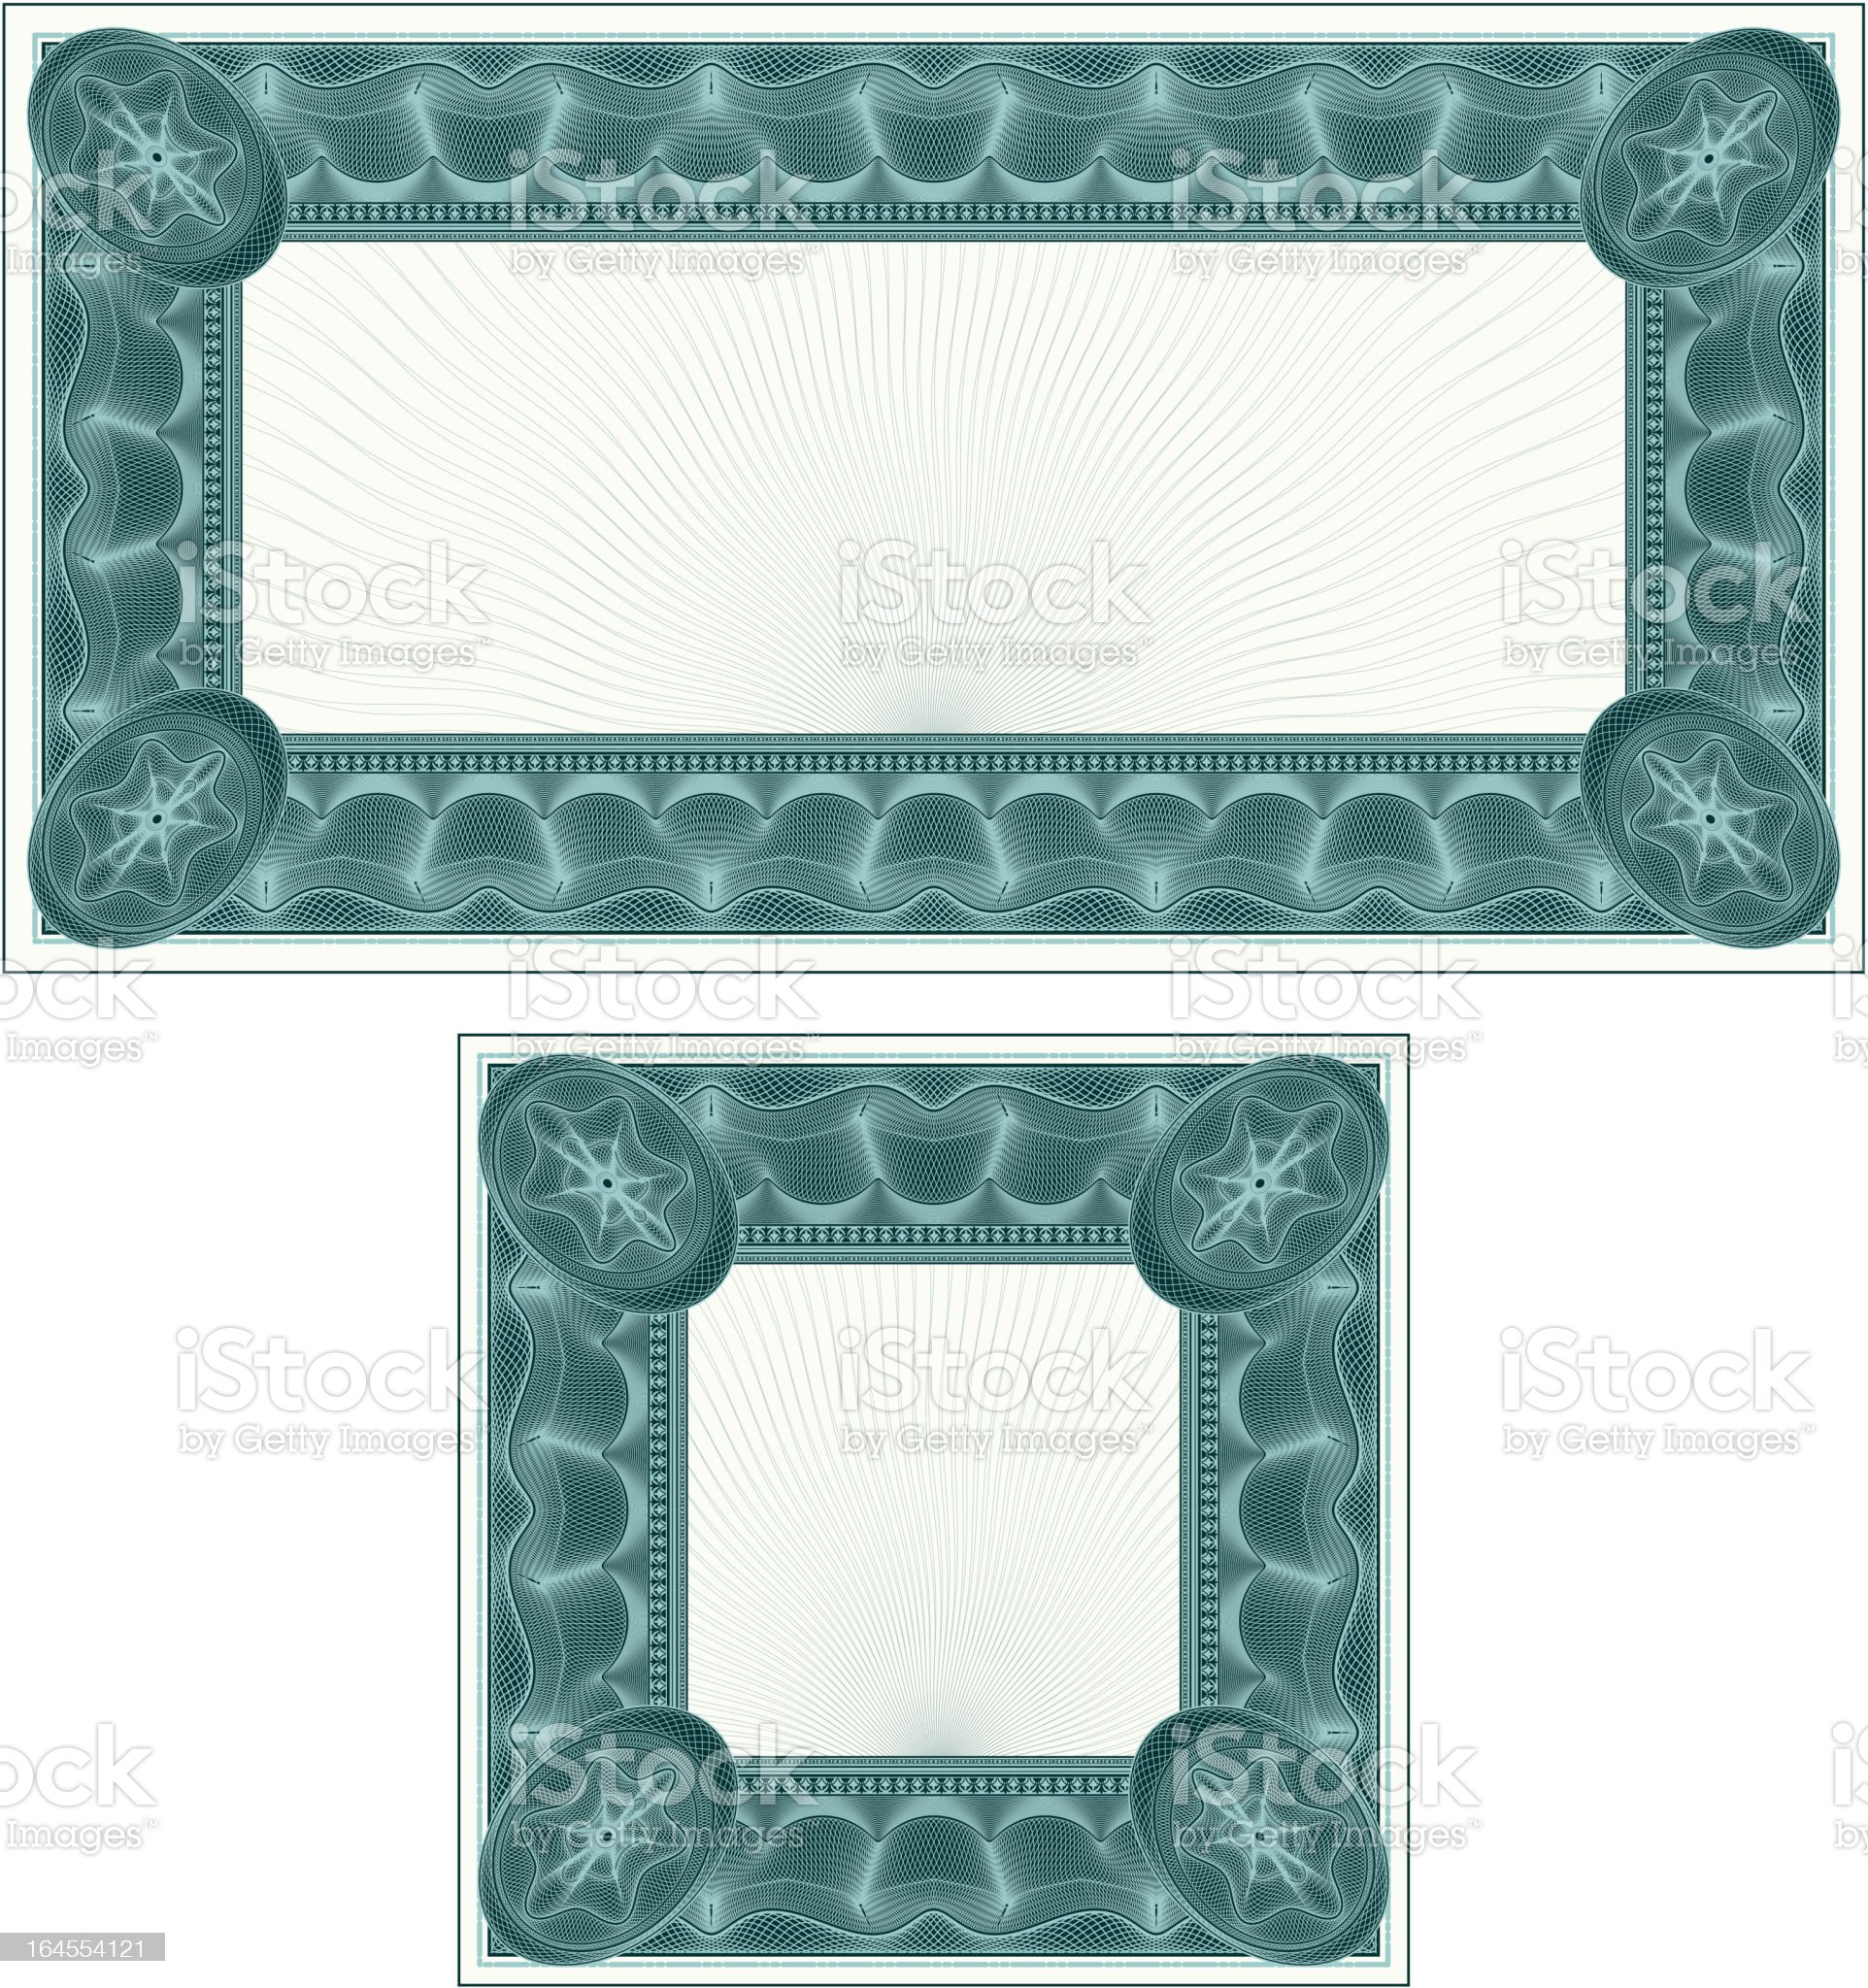 Small Certificate or Coupon Set royalty-free stock vector art